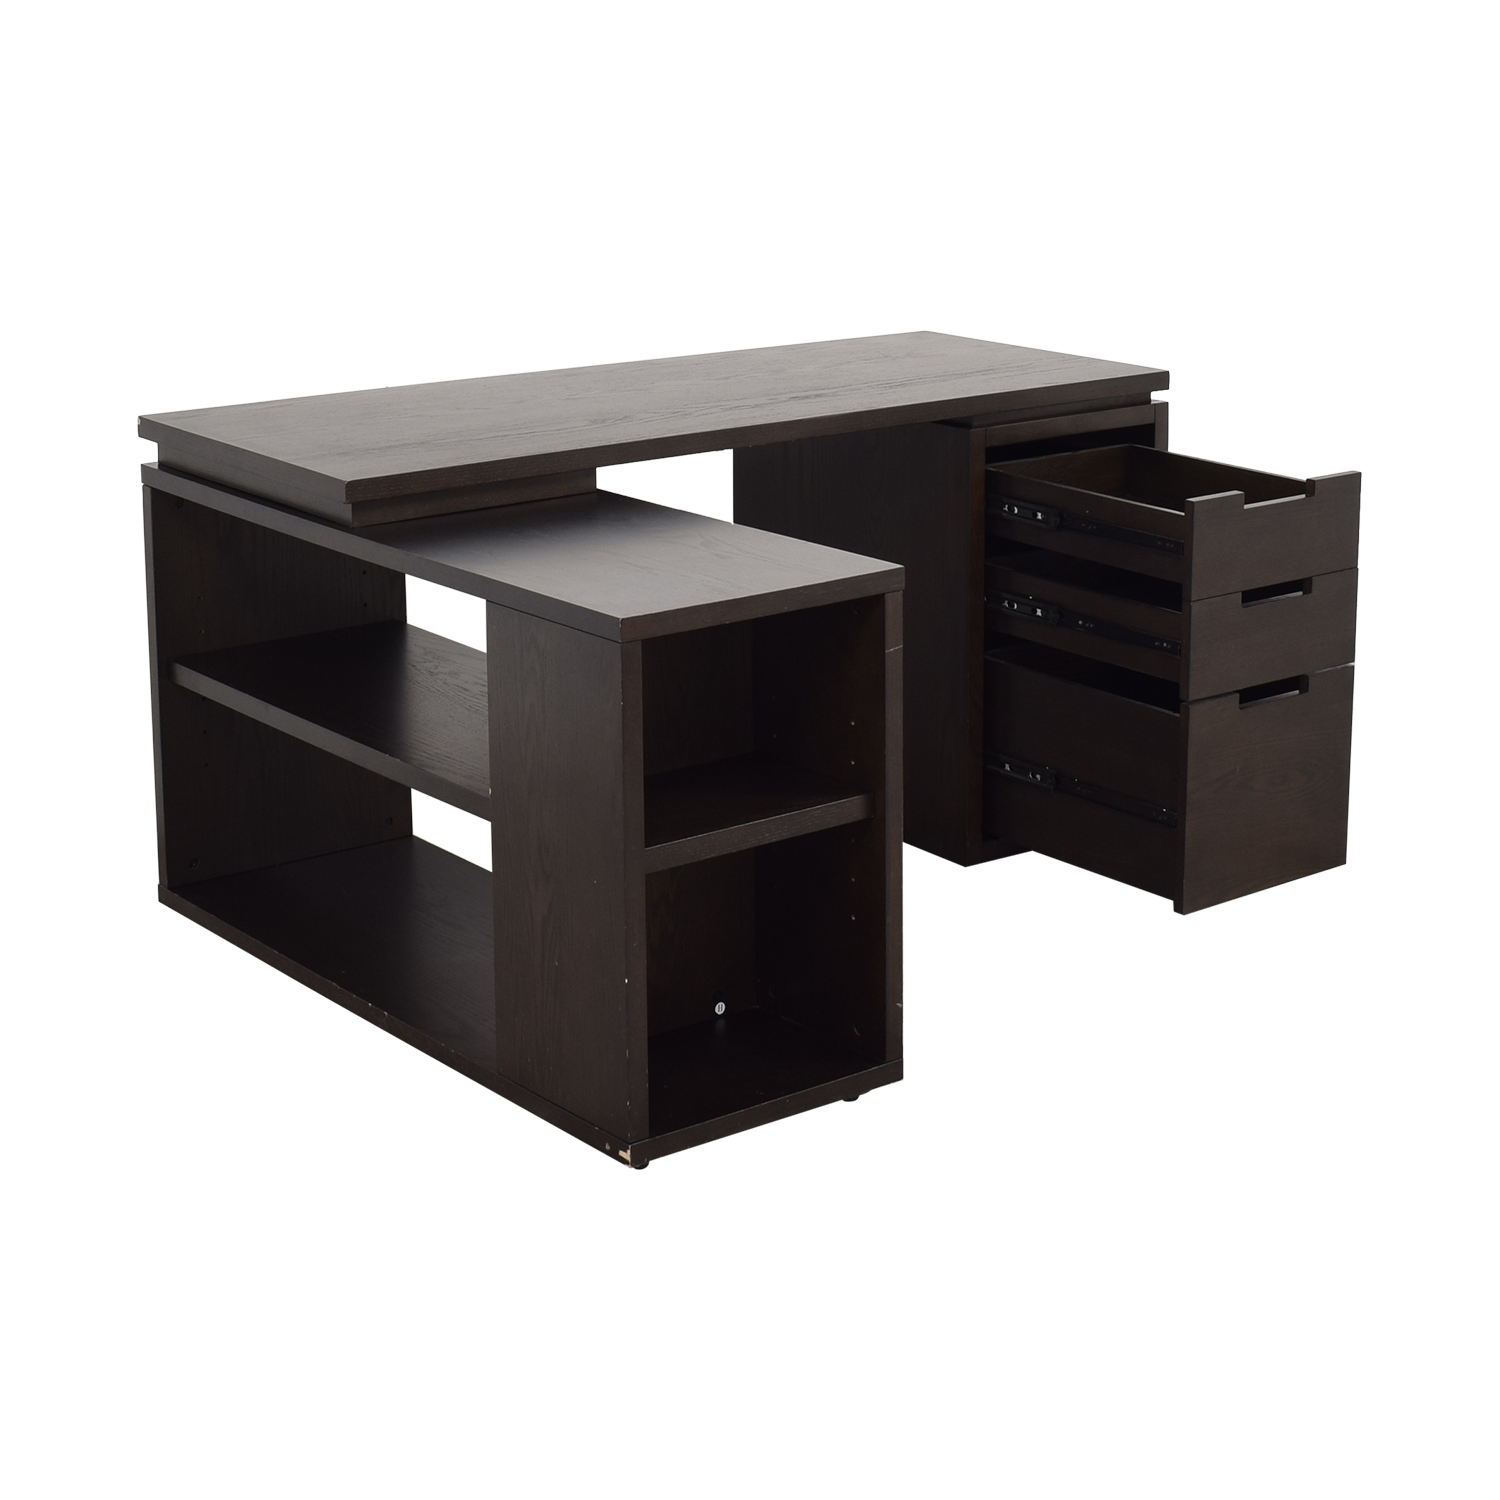 West Elm West Elm Modular Office L-shaped Desk and Bookcase discount